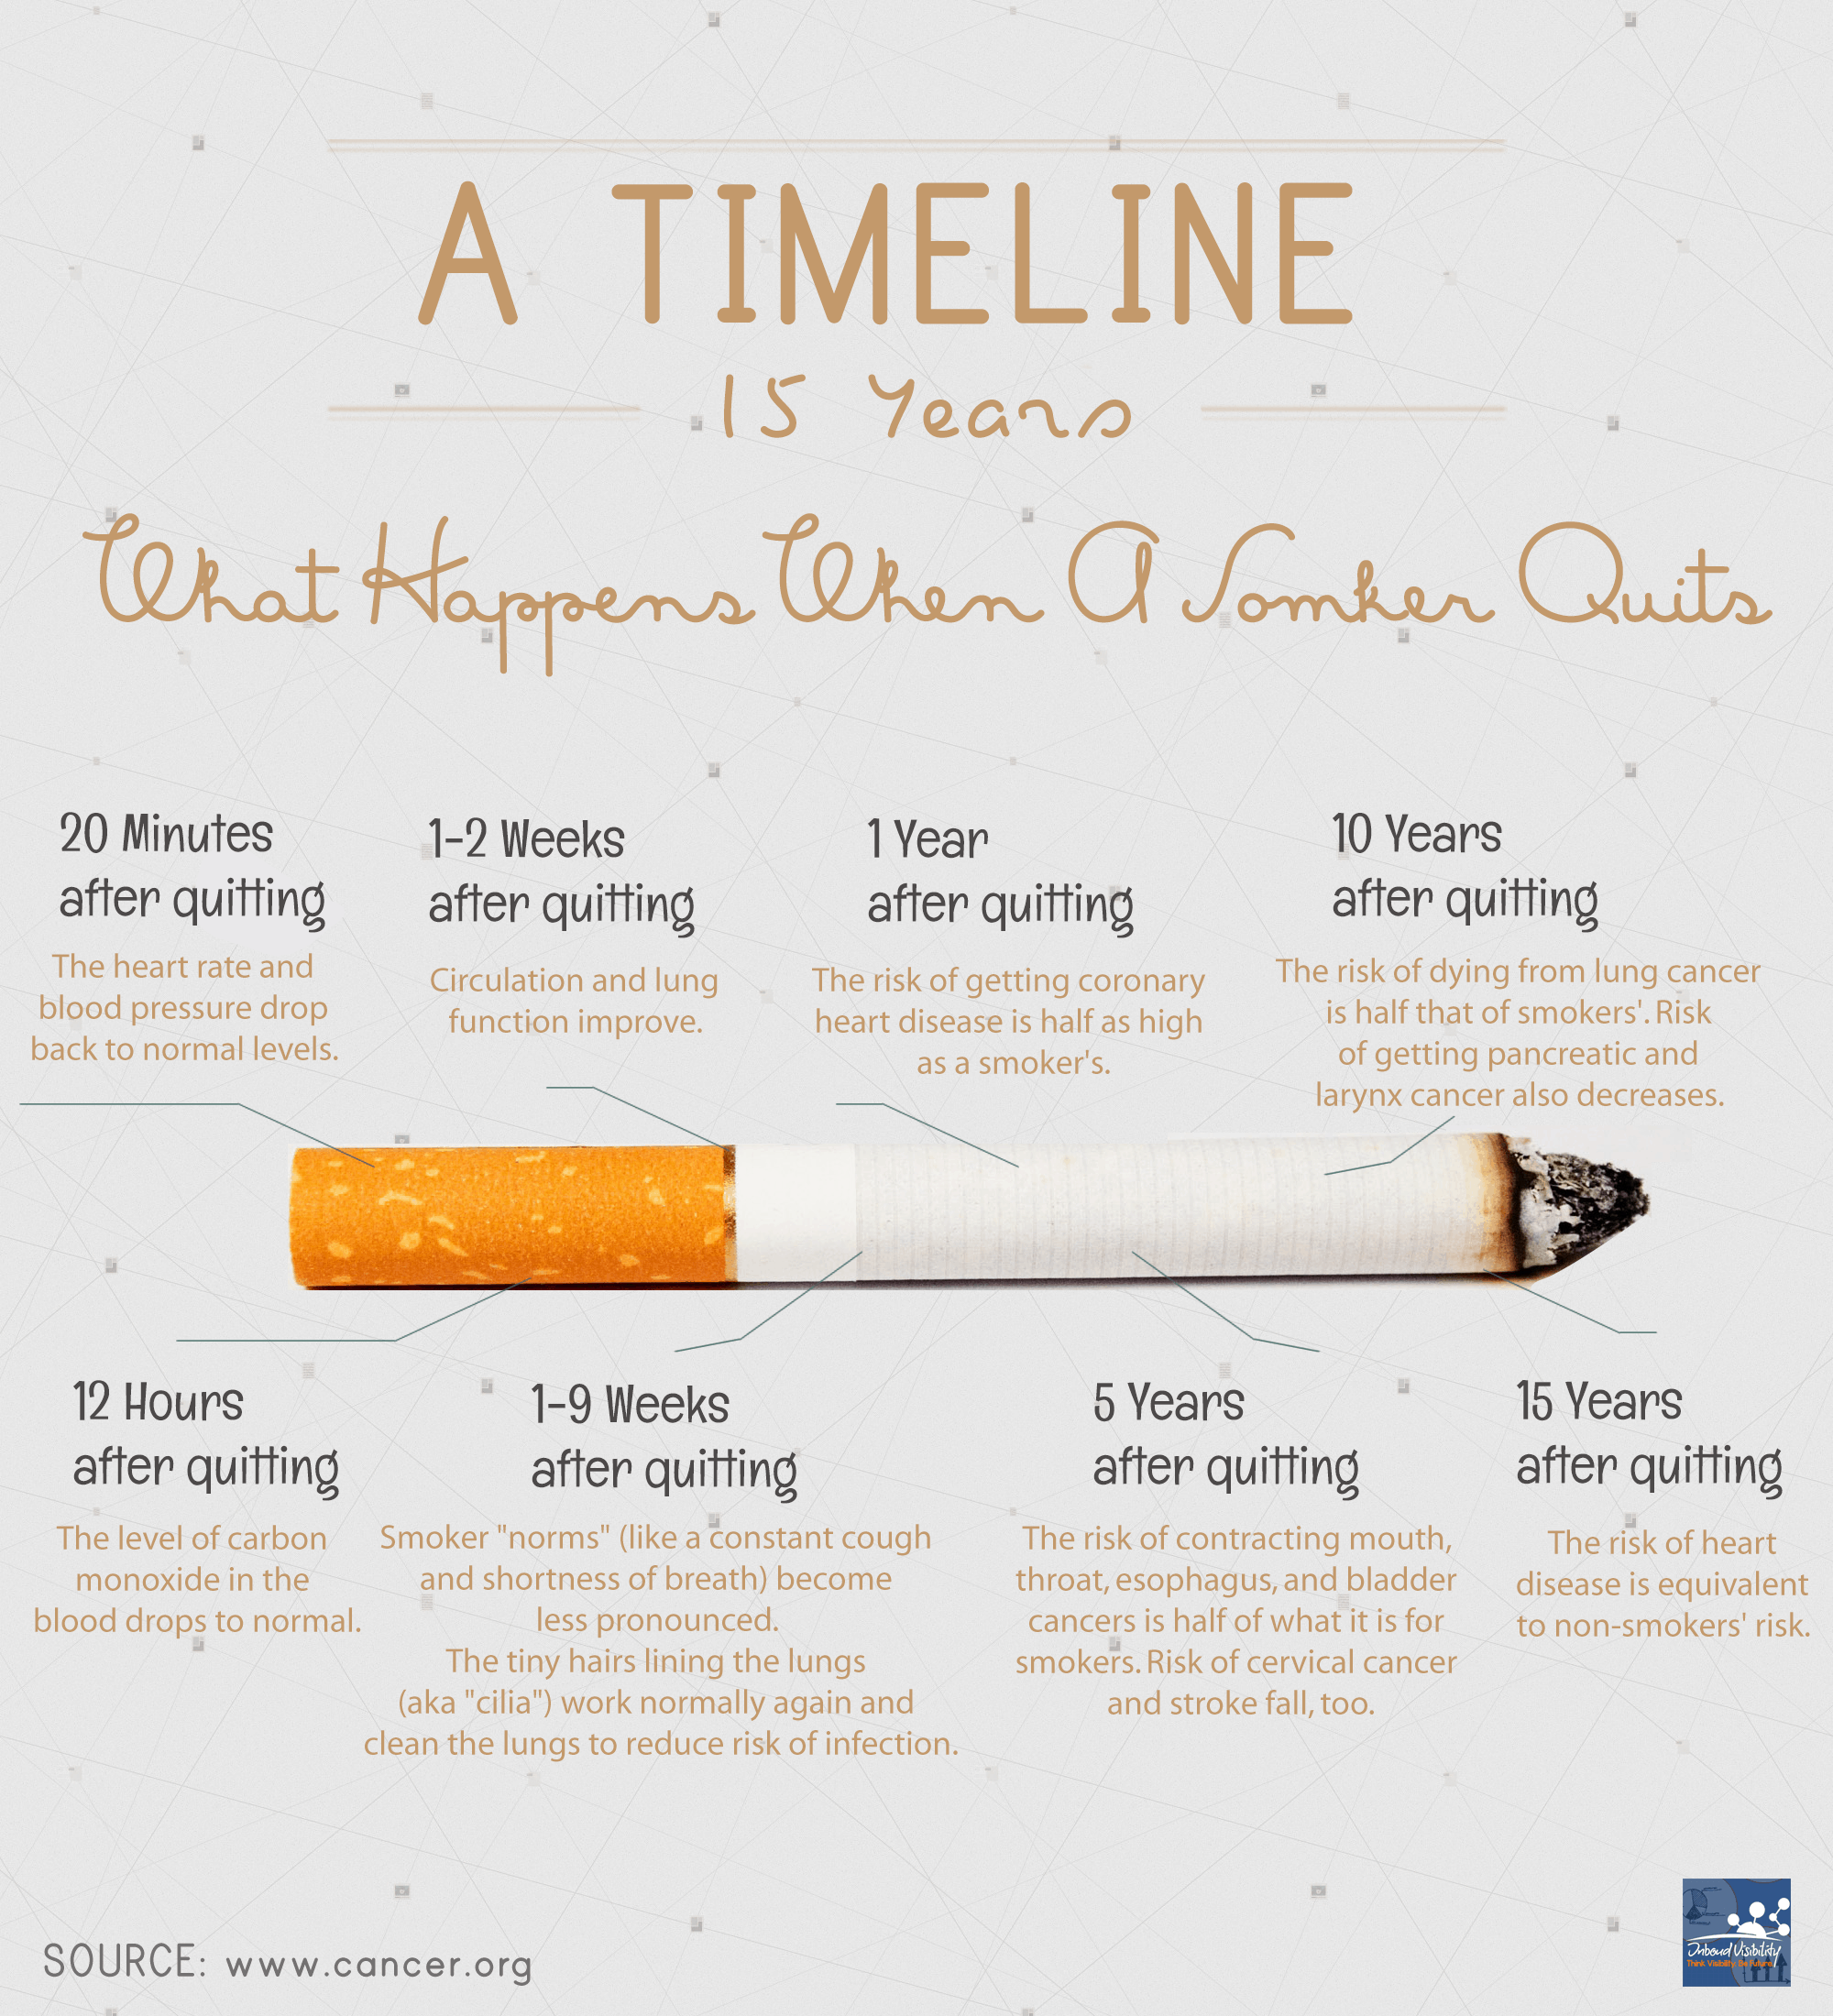 http://dailyinfographic.com/wp-content/uploads/2013/11/a-timeline-what-happens-when-a-smoker-quits_52720a006ec94.png